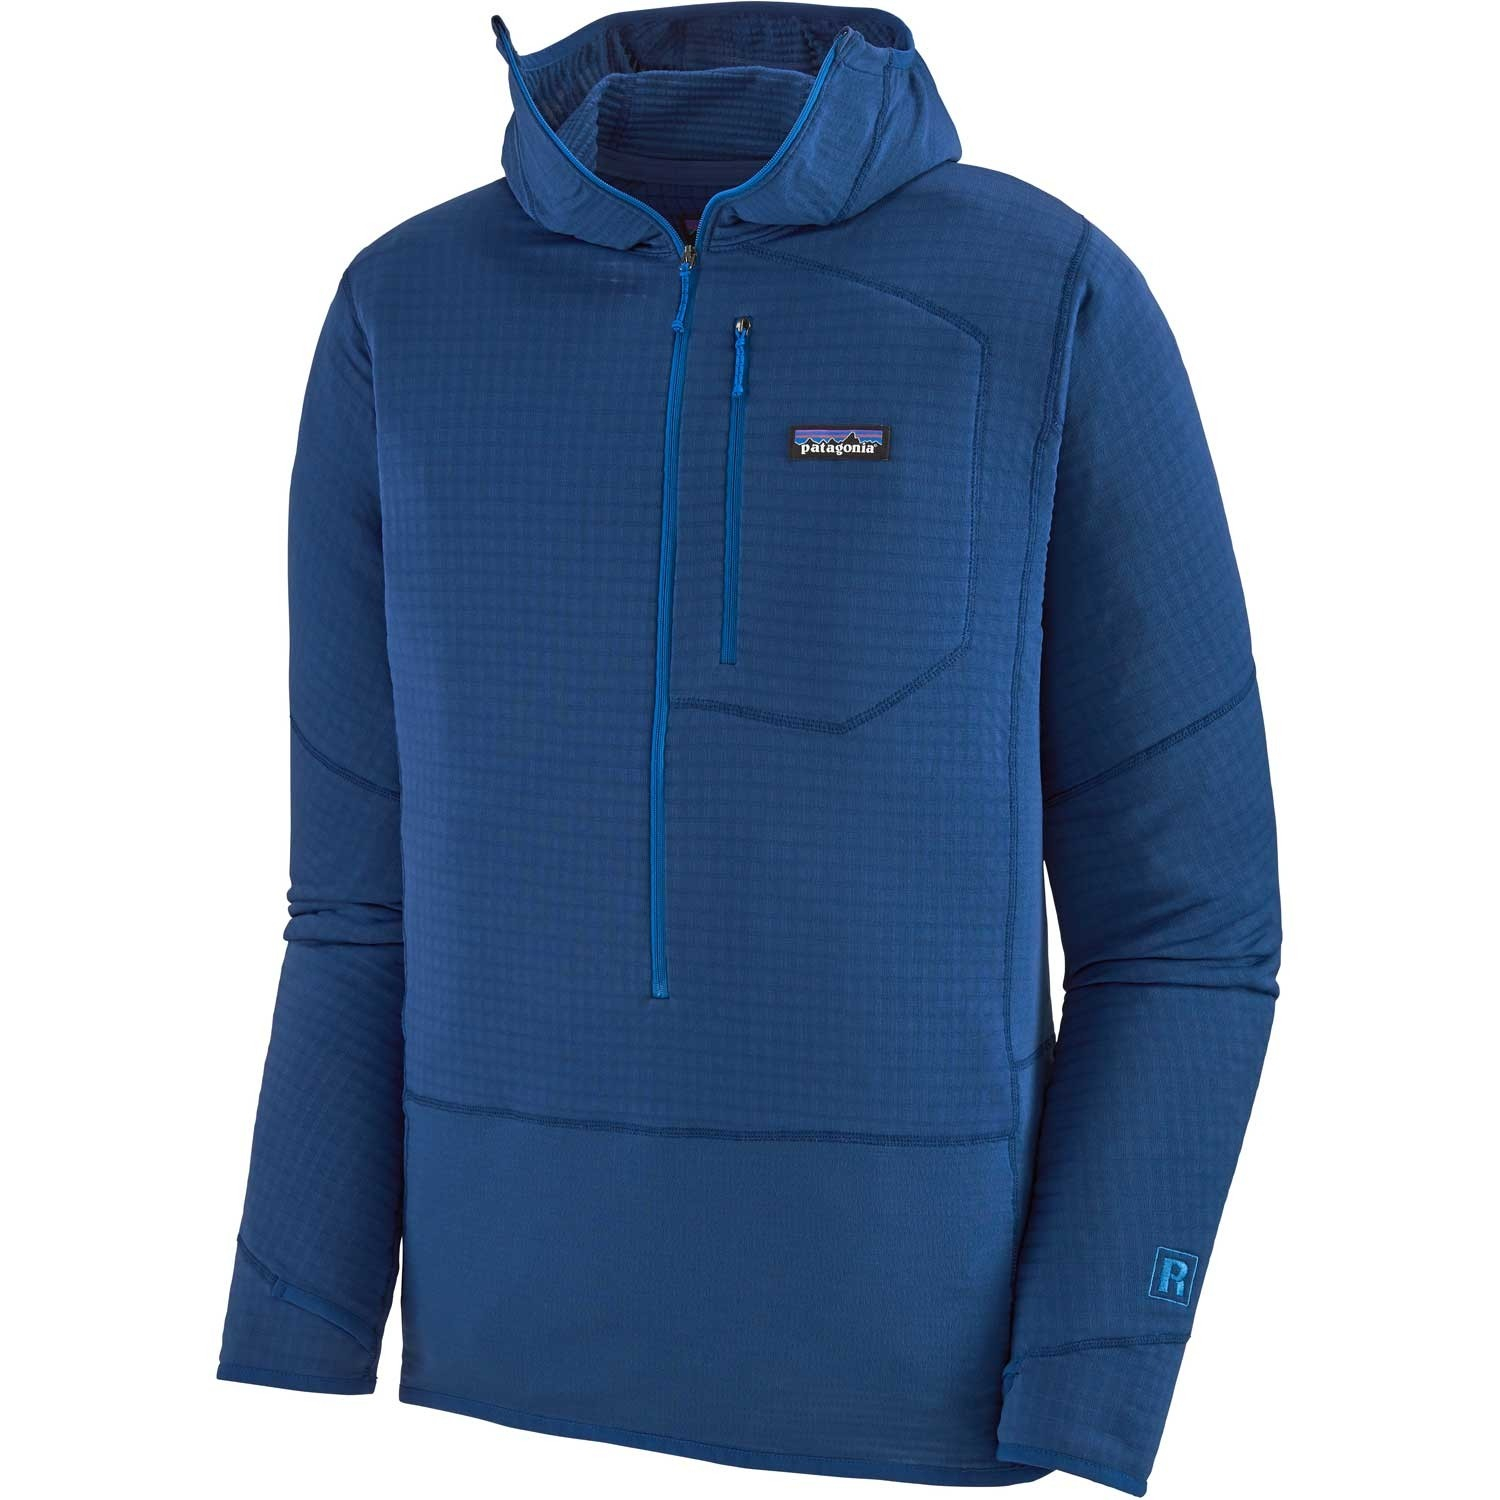 Patagonia R1 Pullover Hoody - Men's - Superior Blue